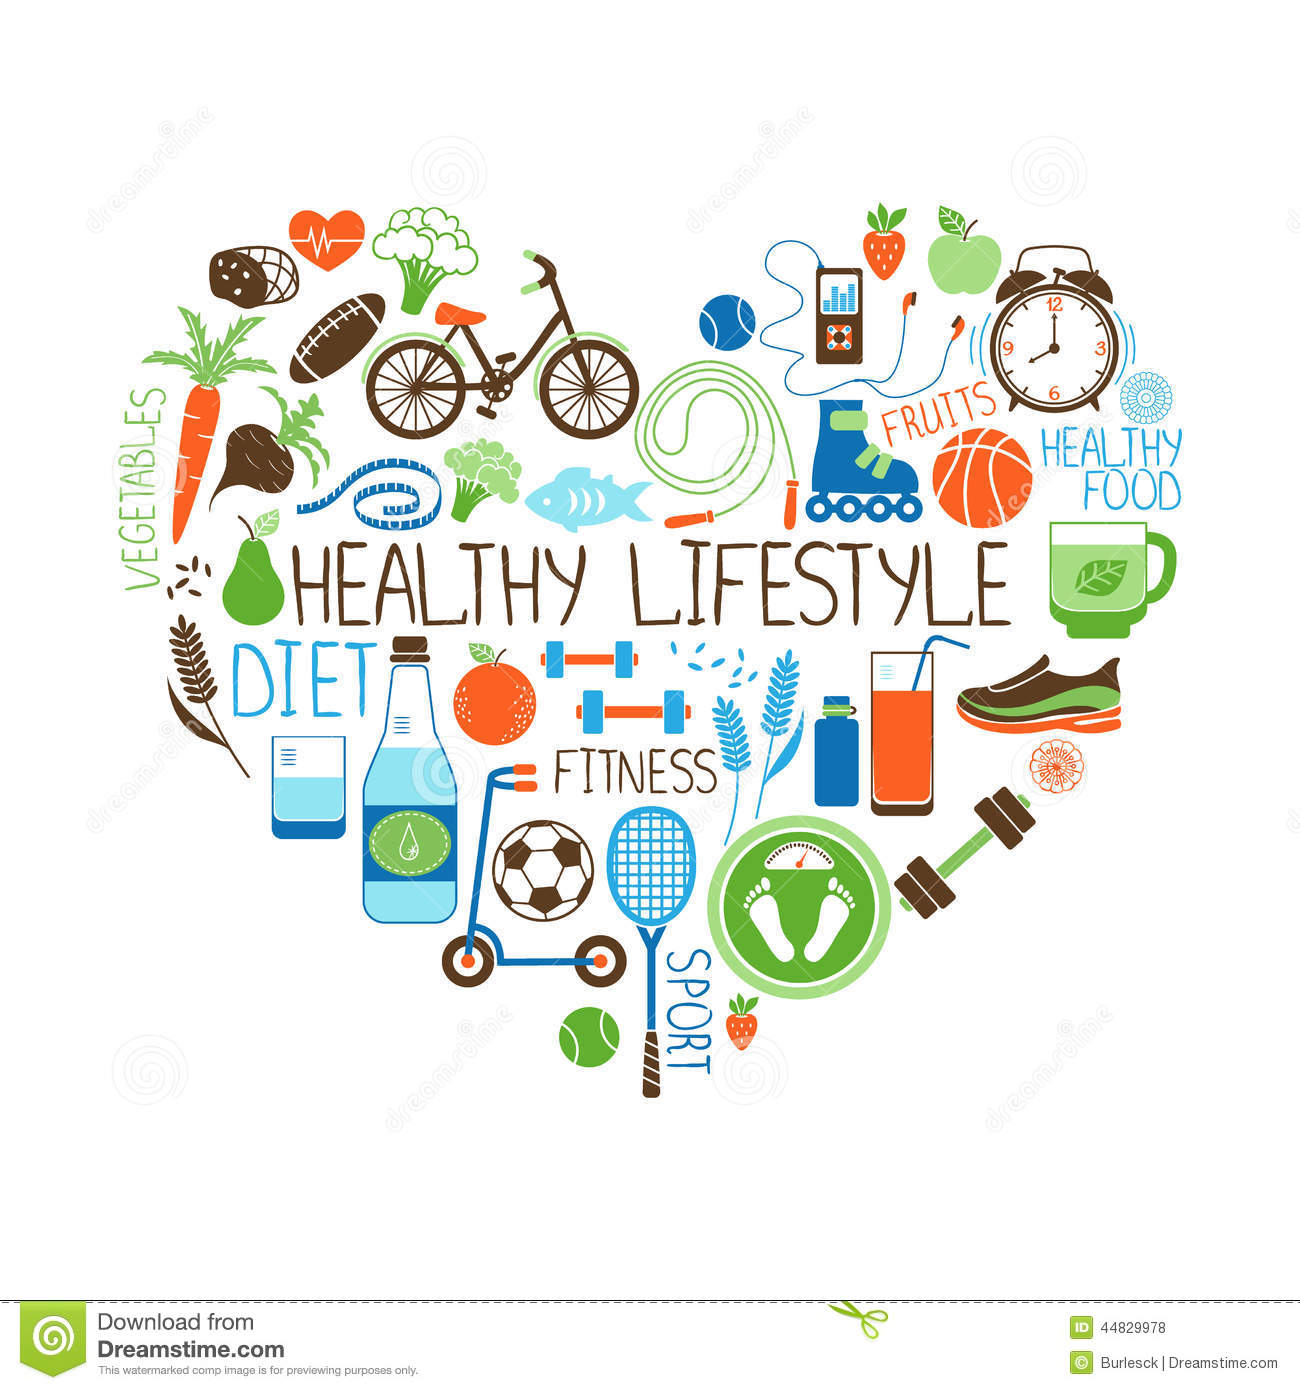 Healthy Lifestyle Diet And Fitness Vector Sign In The Shape Of A Heart